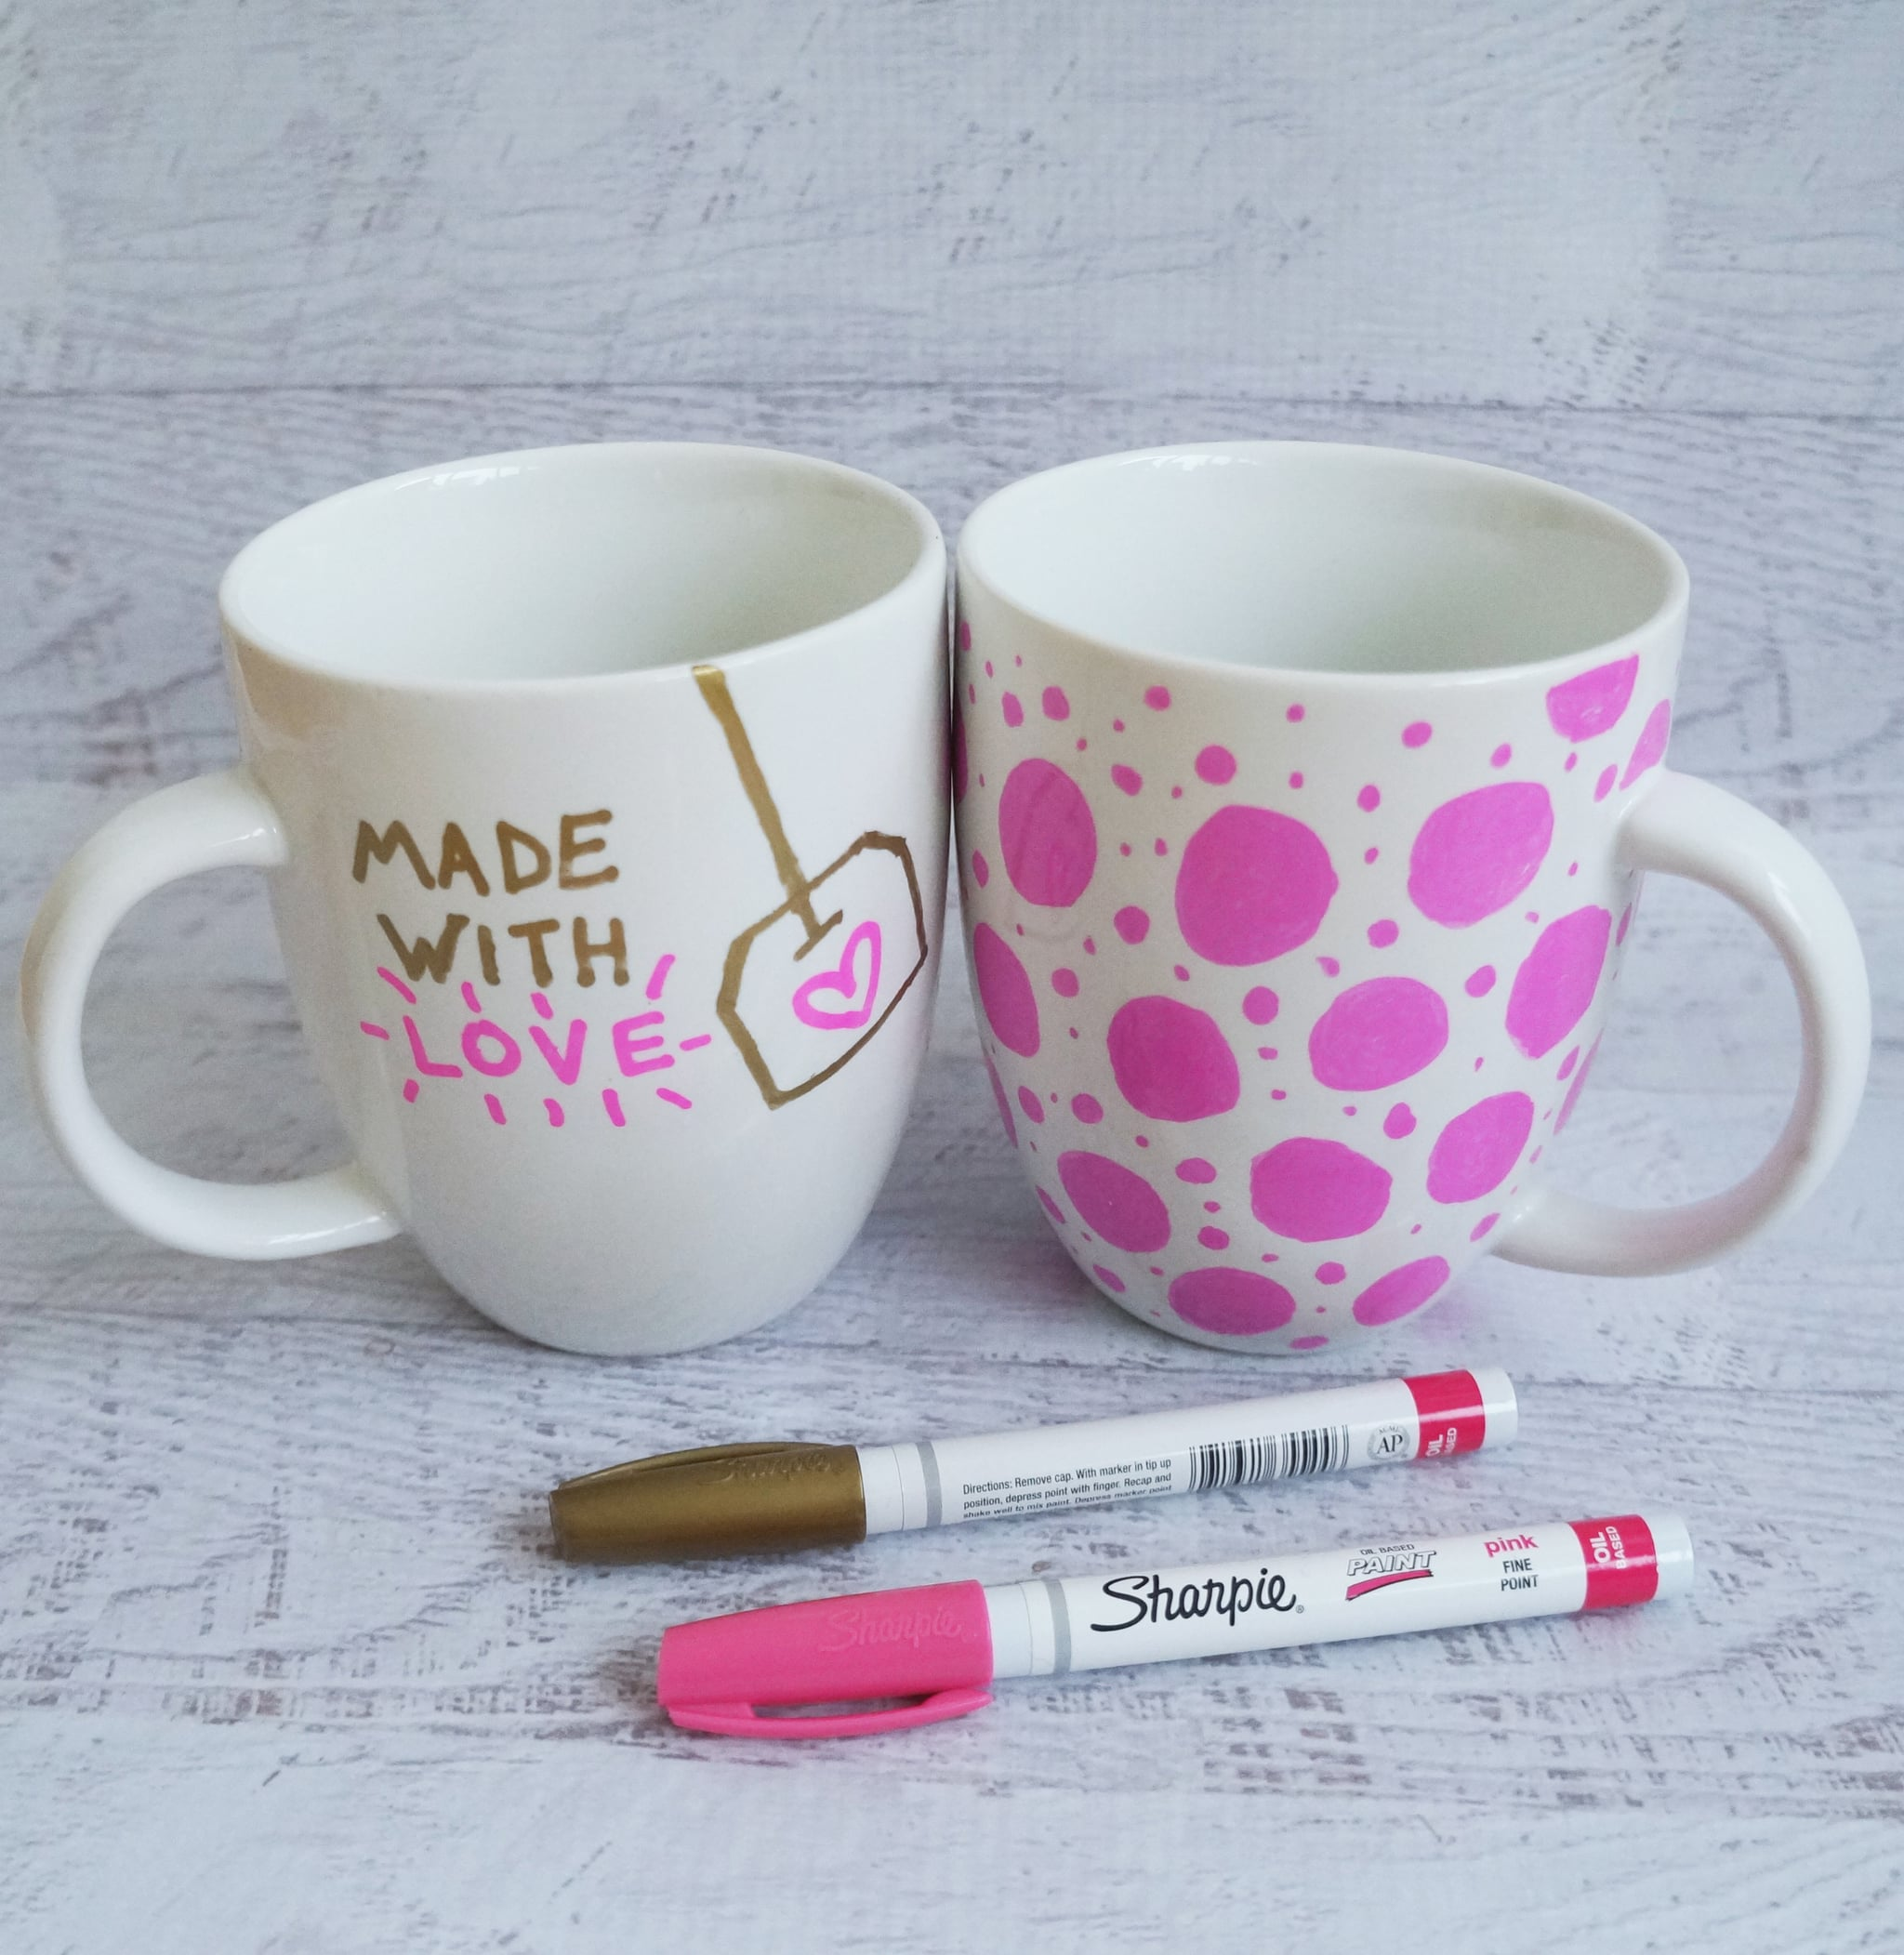 Sharpie Mug DIY Project POPSUGAR Smart Living